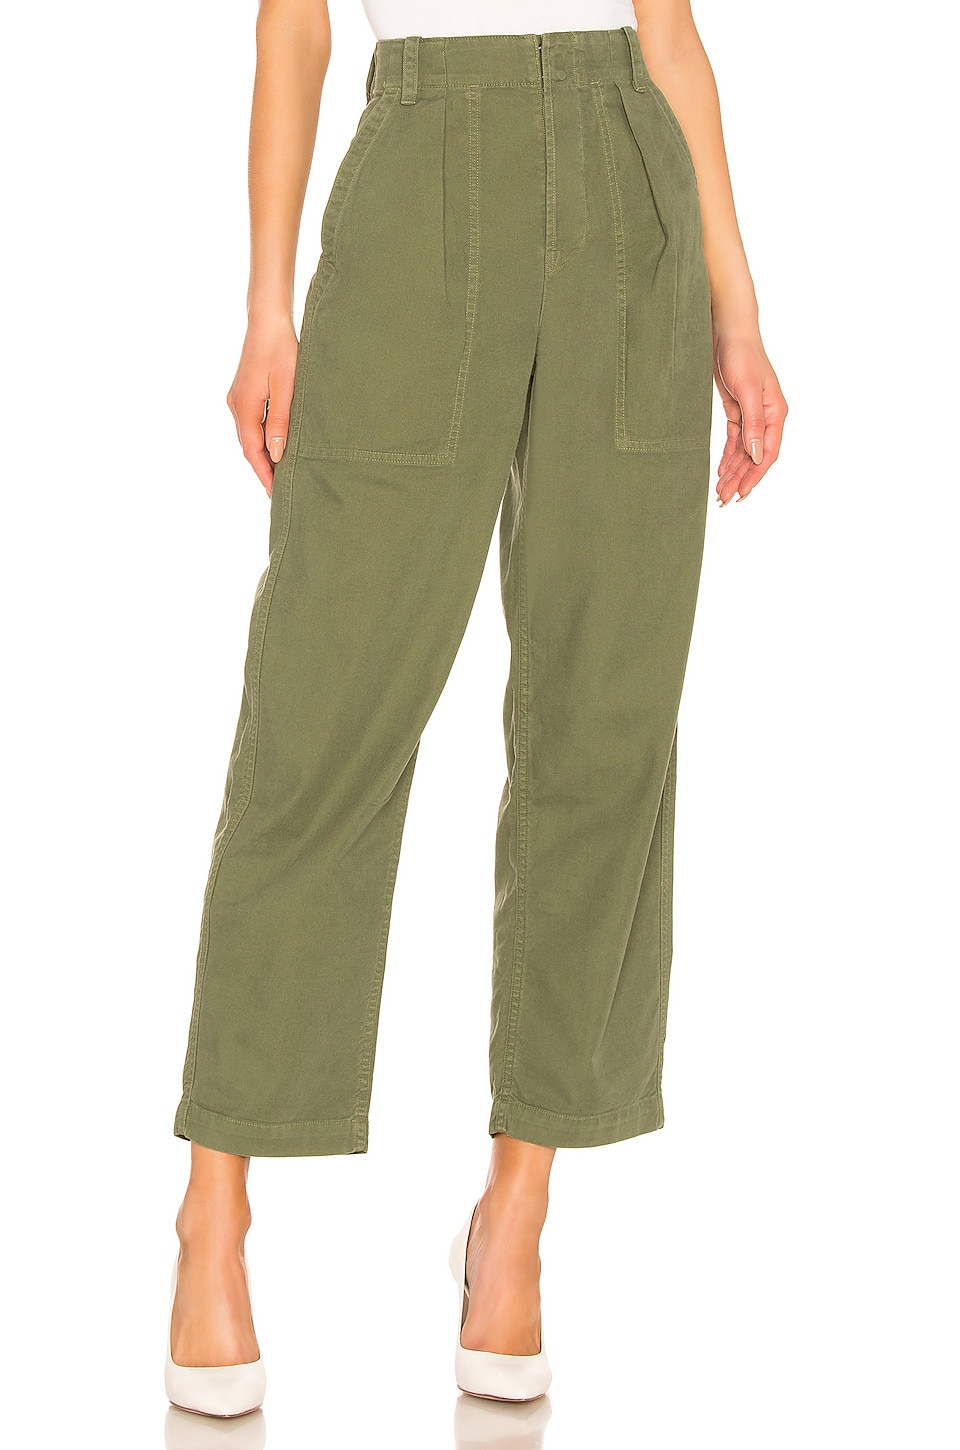 Citizens of Humanity Cassidy Pleat Pocket Pant in Laurel